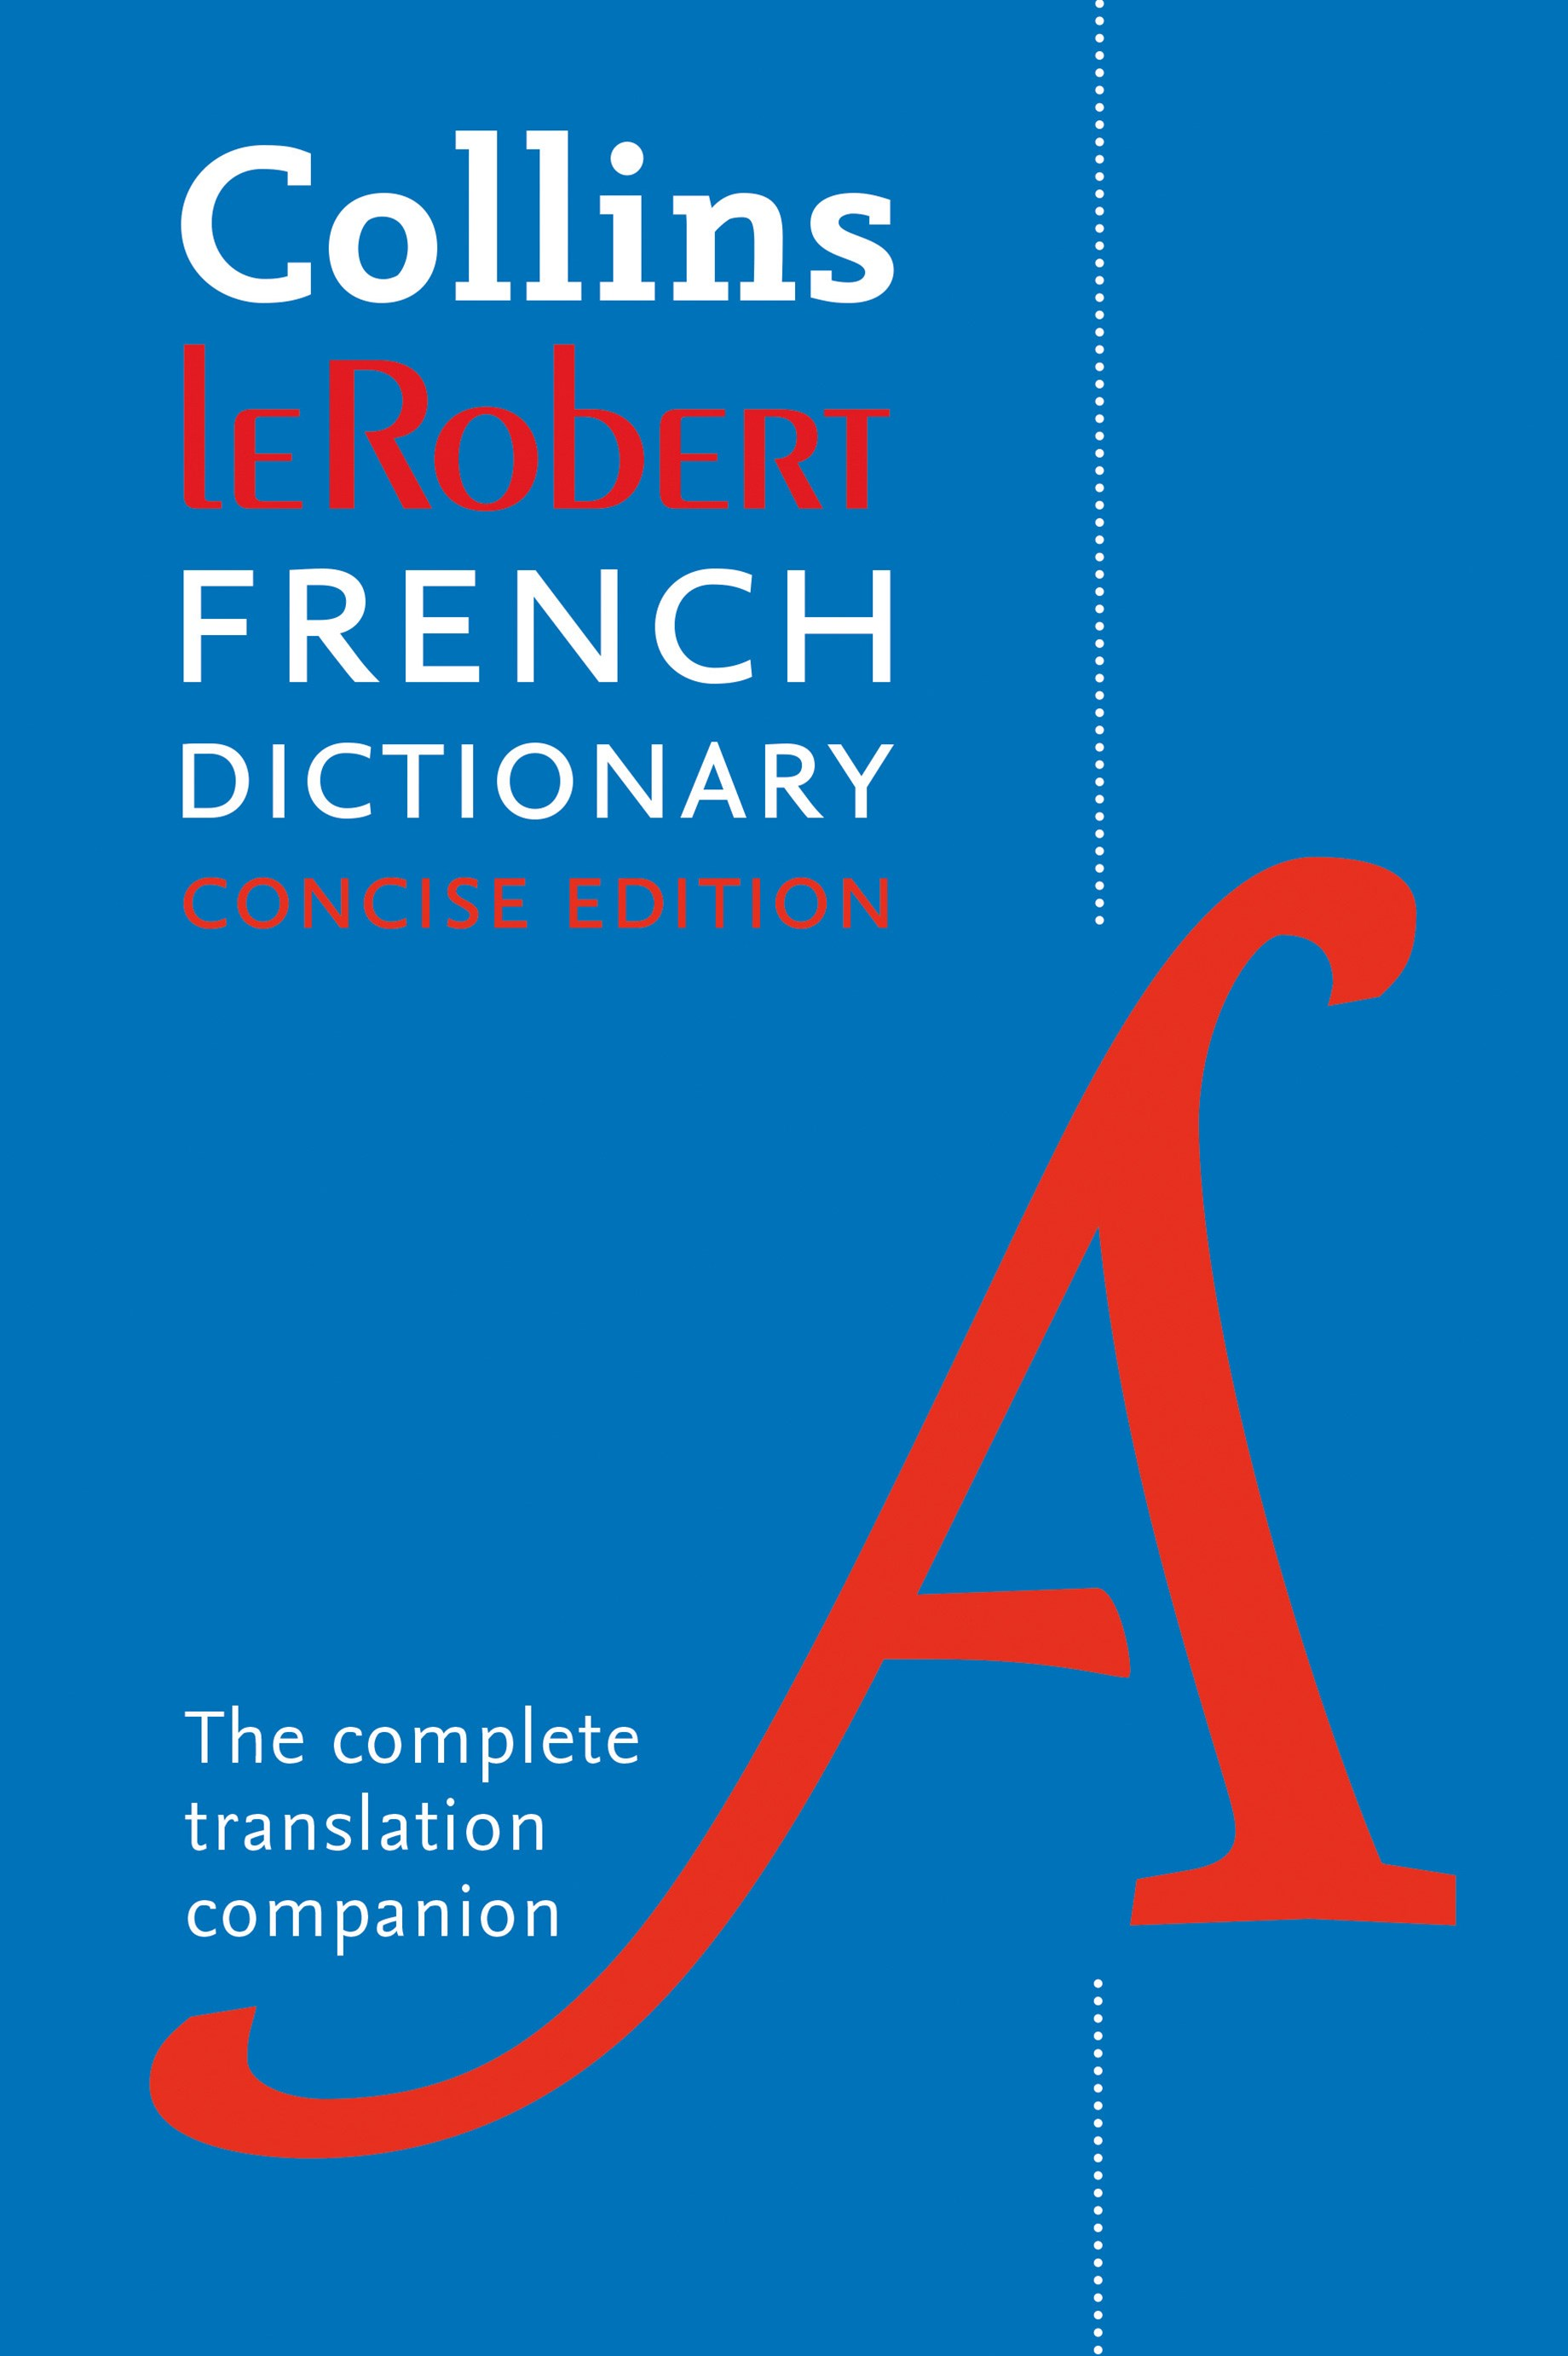 Collins Robert French Dictionary: Concise Edition [9th Edition]